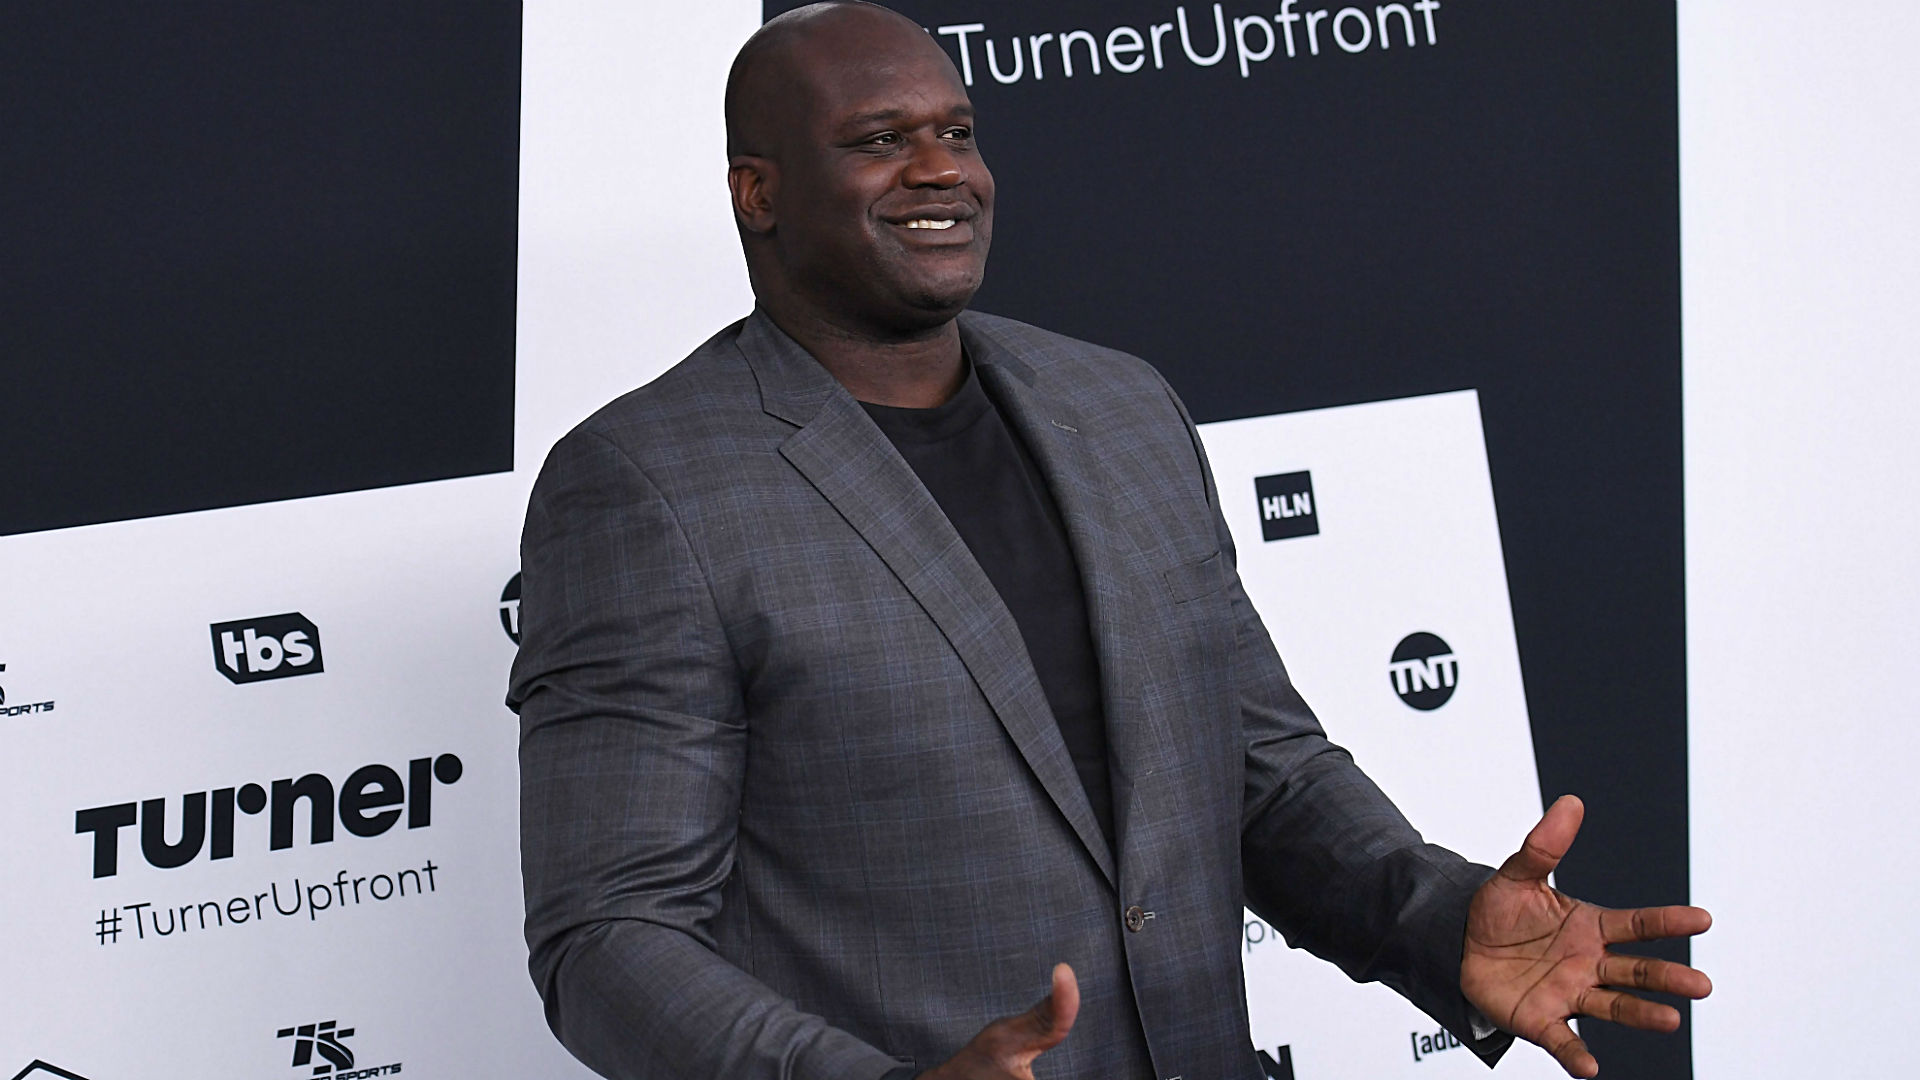 Shaquille O Neal reveals the touching story behind his name